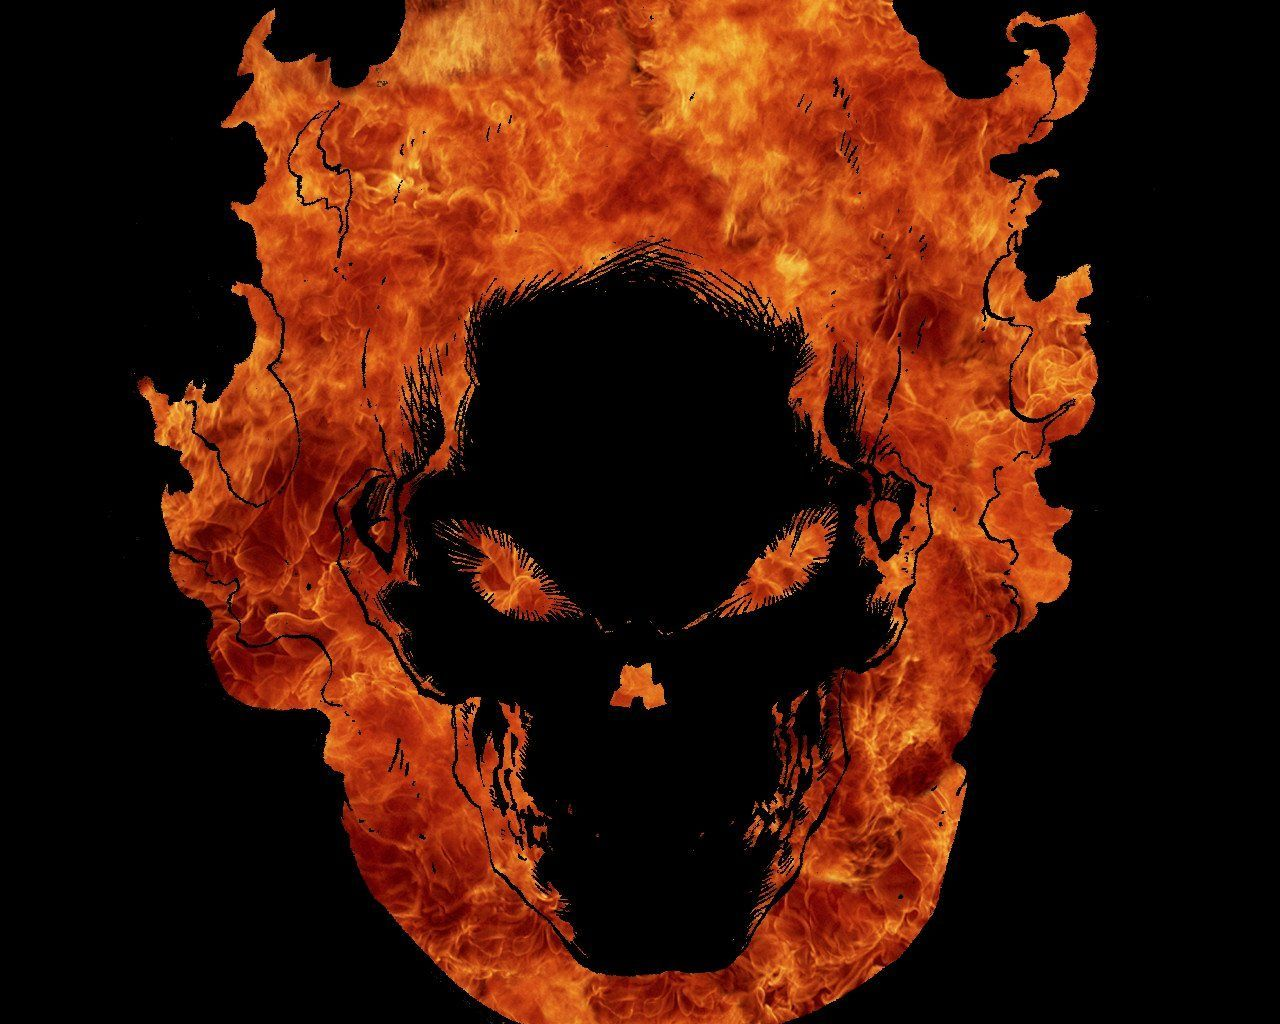 Ghost Rider Movie Wallpaper Wallpapers 800x600 HD 45